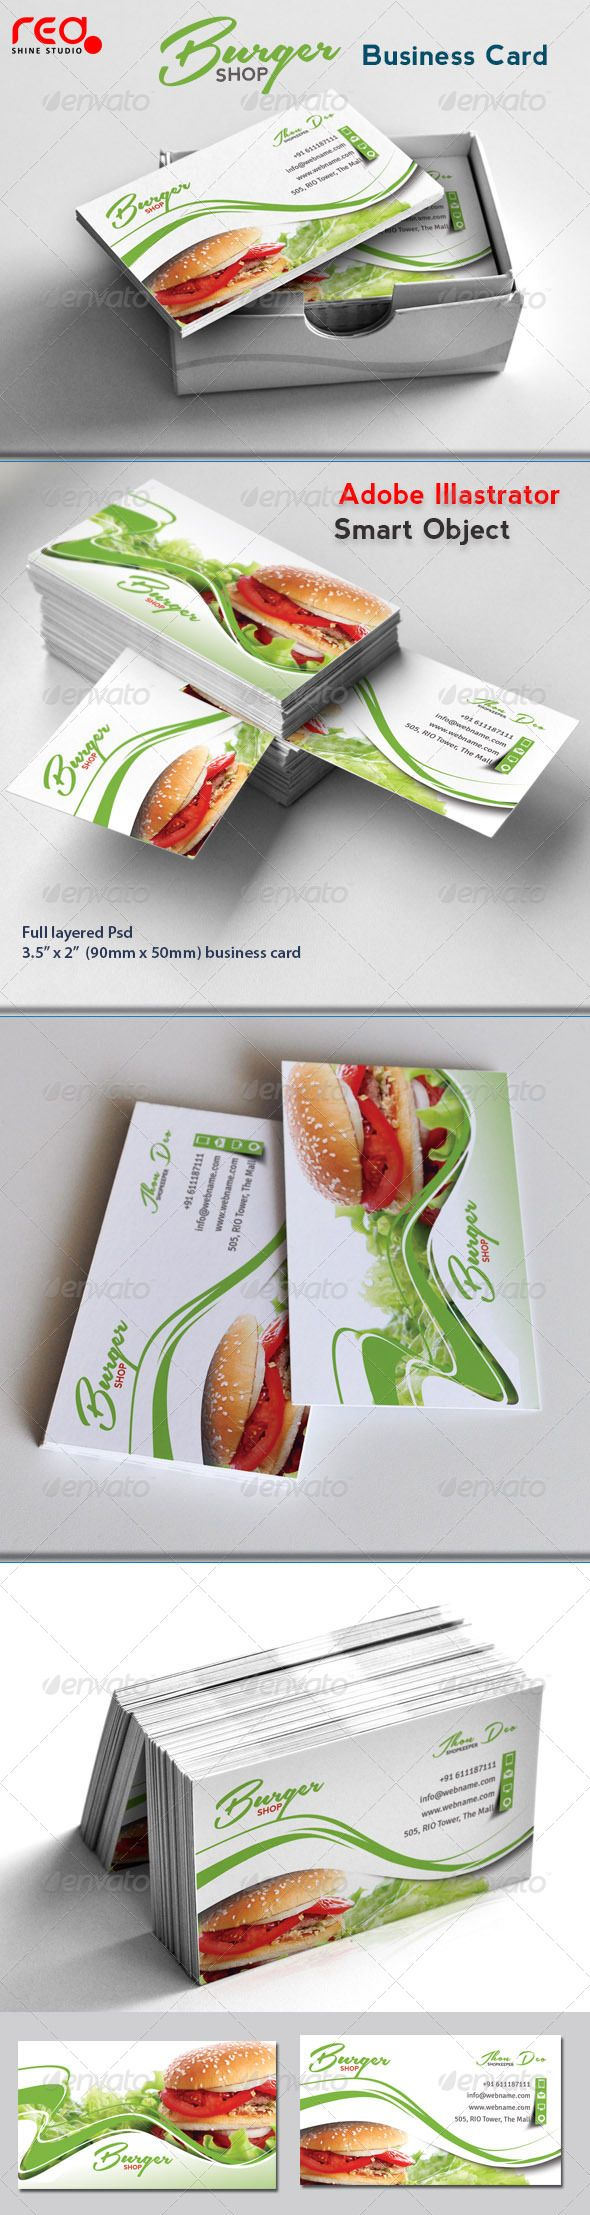 Fast Food Business Card | Business cards, Business and Card templates